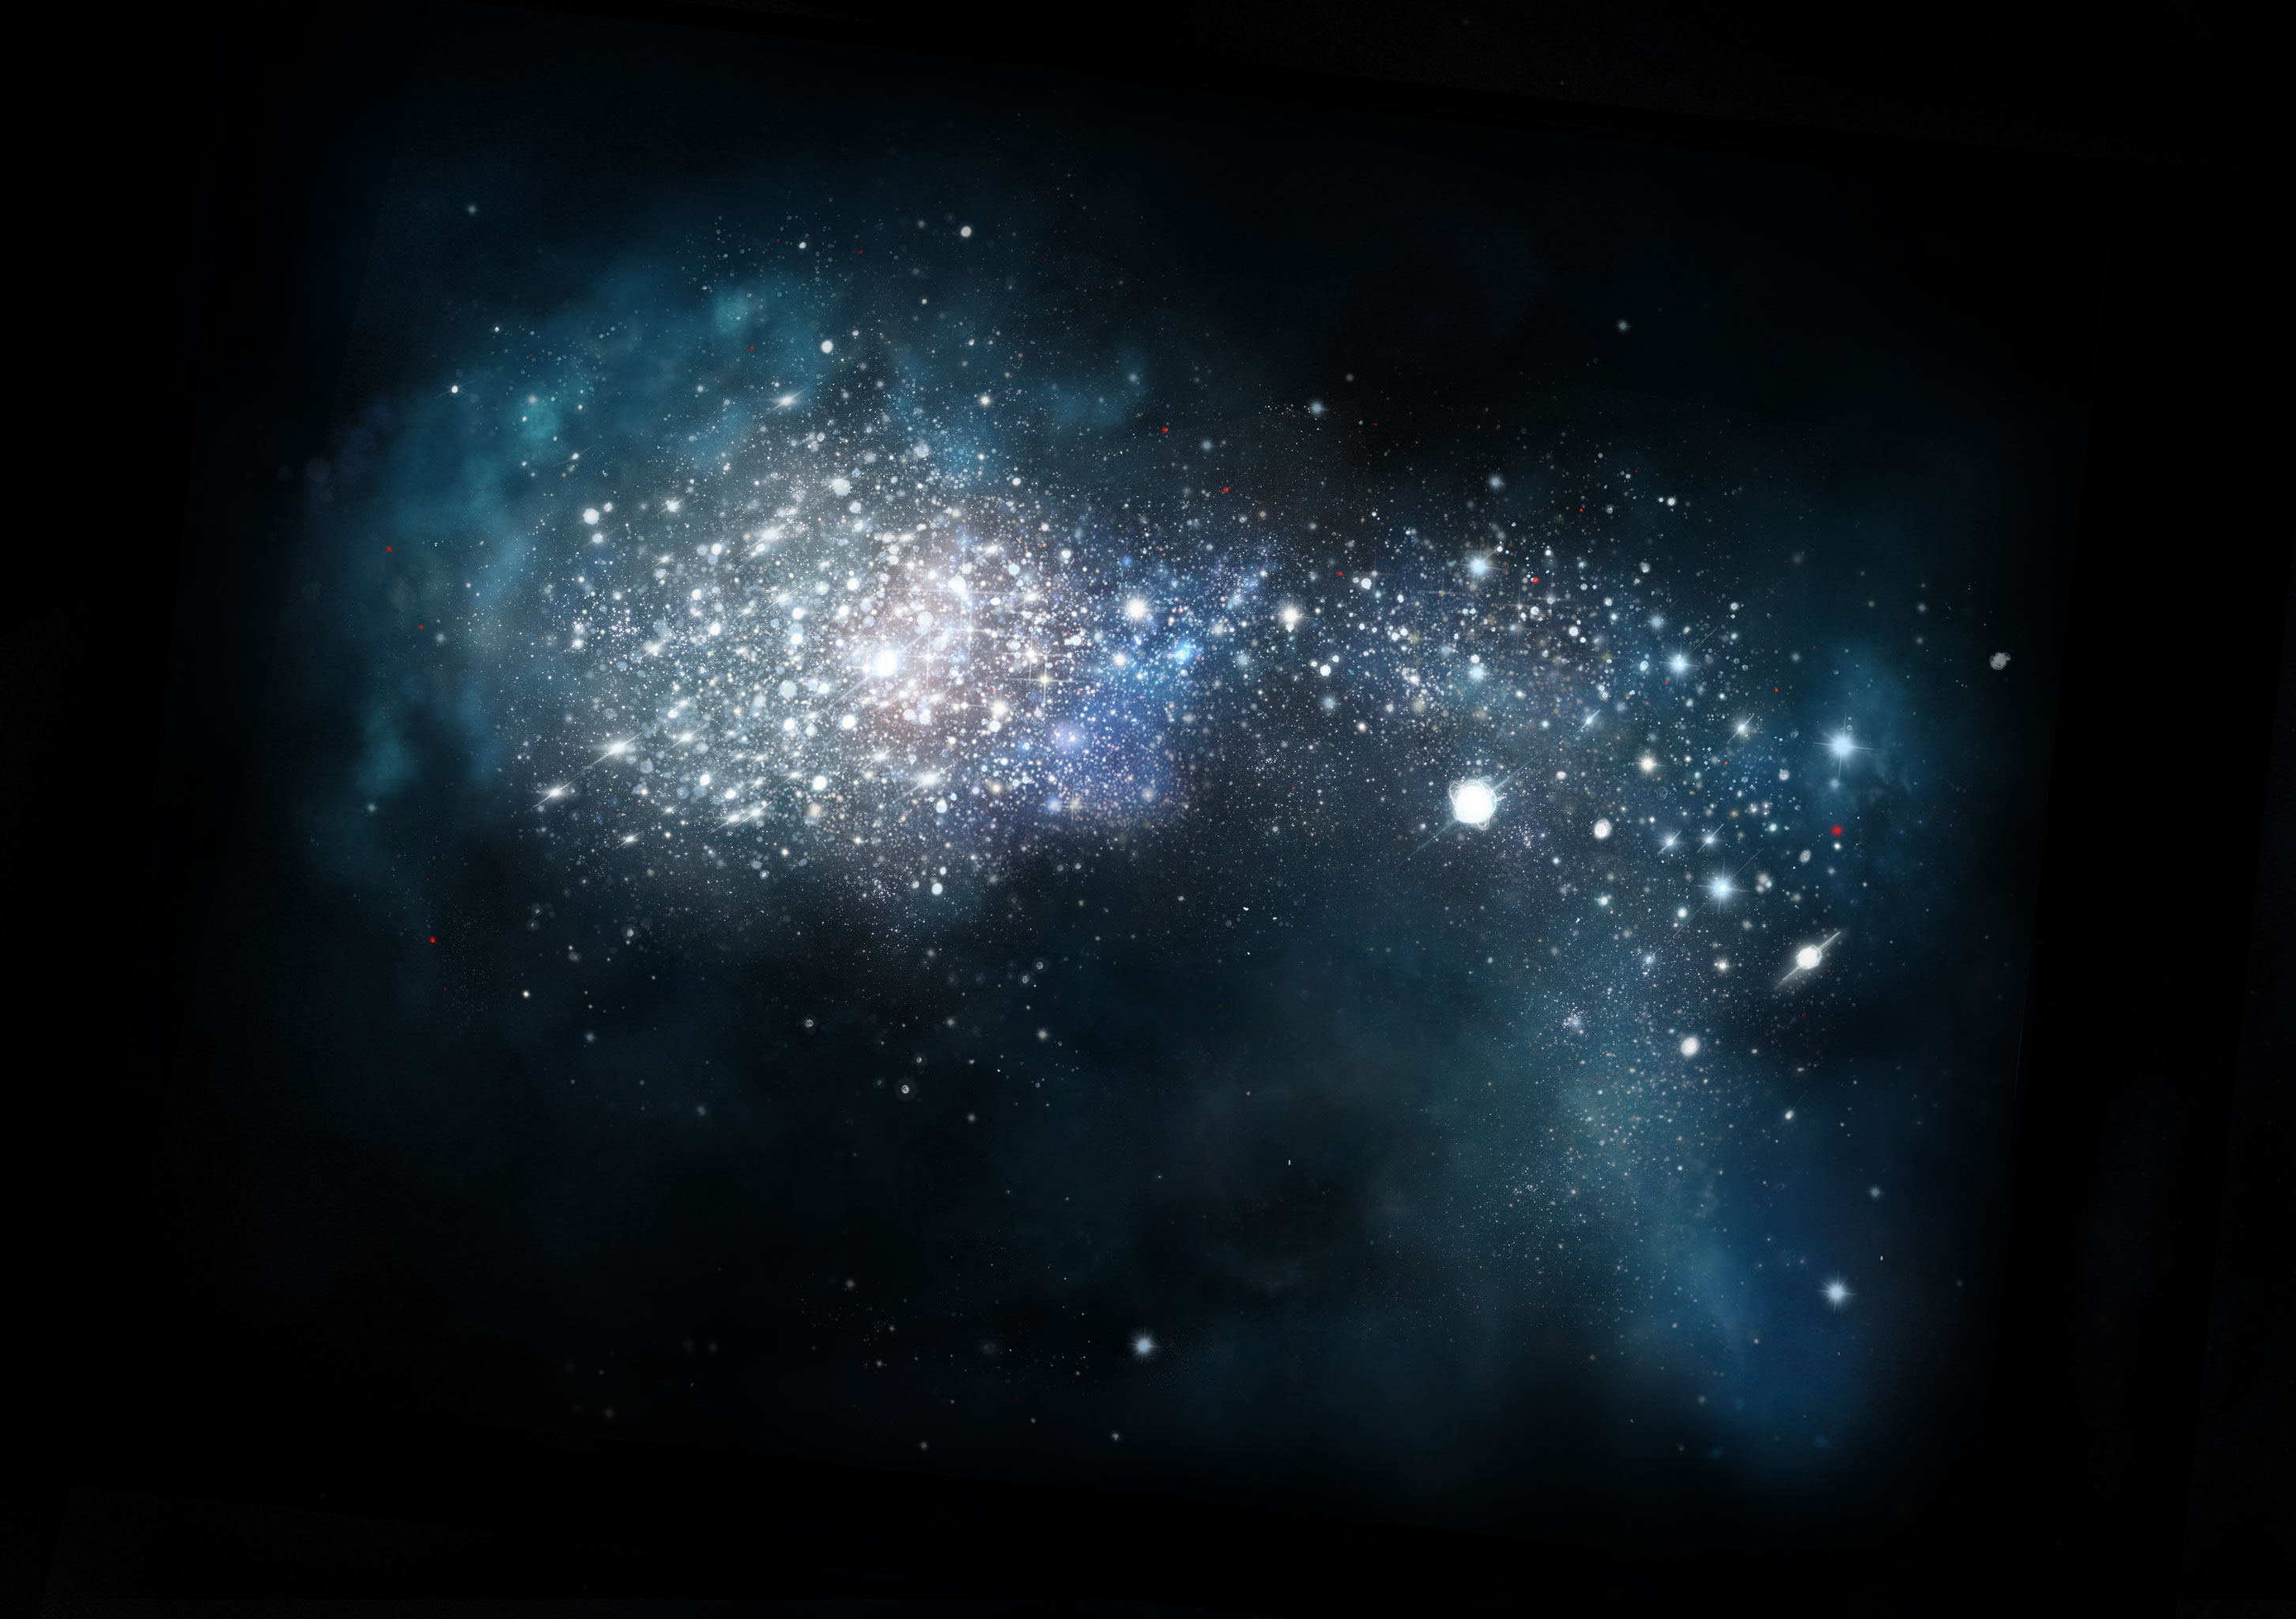 Artist impression of very young galaxy in the early universe.